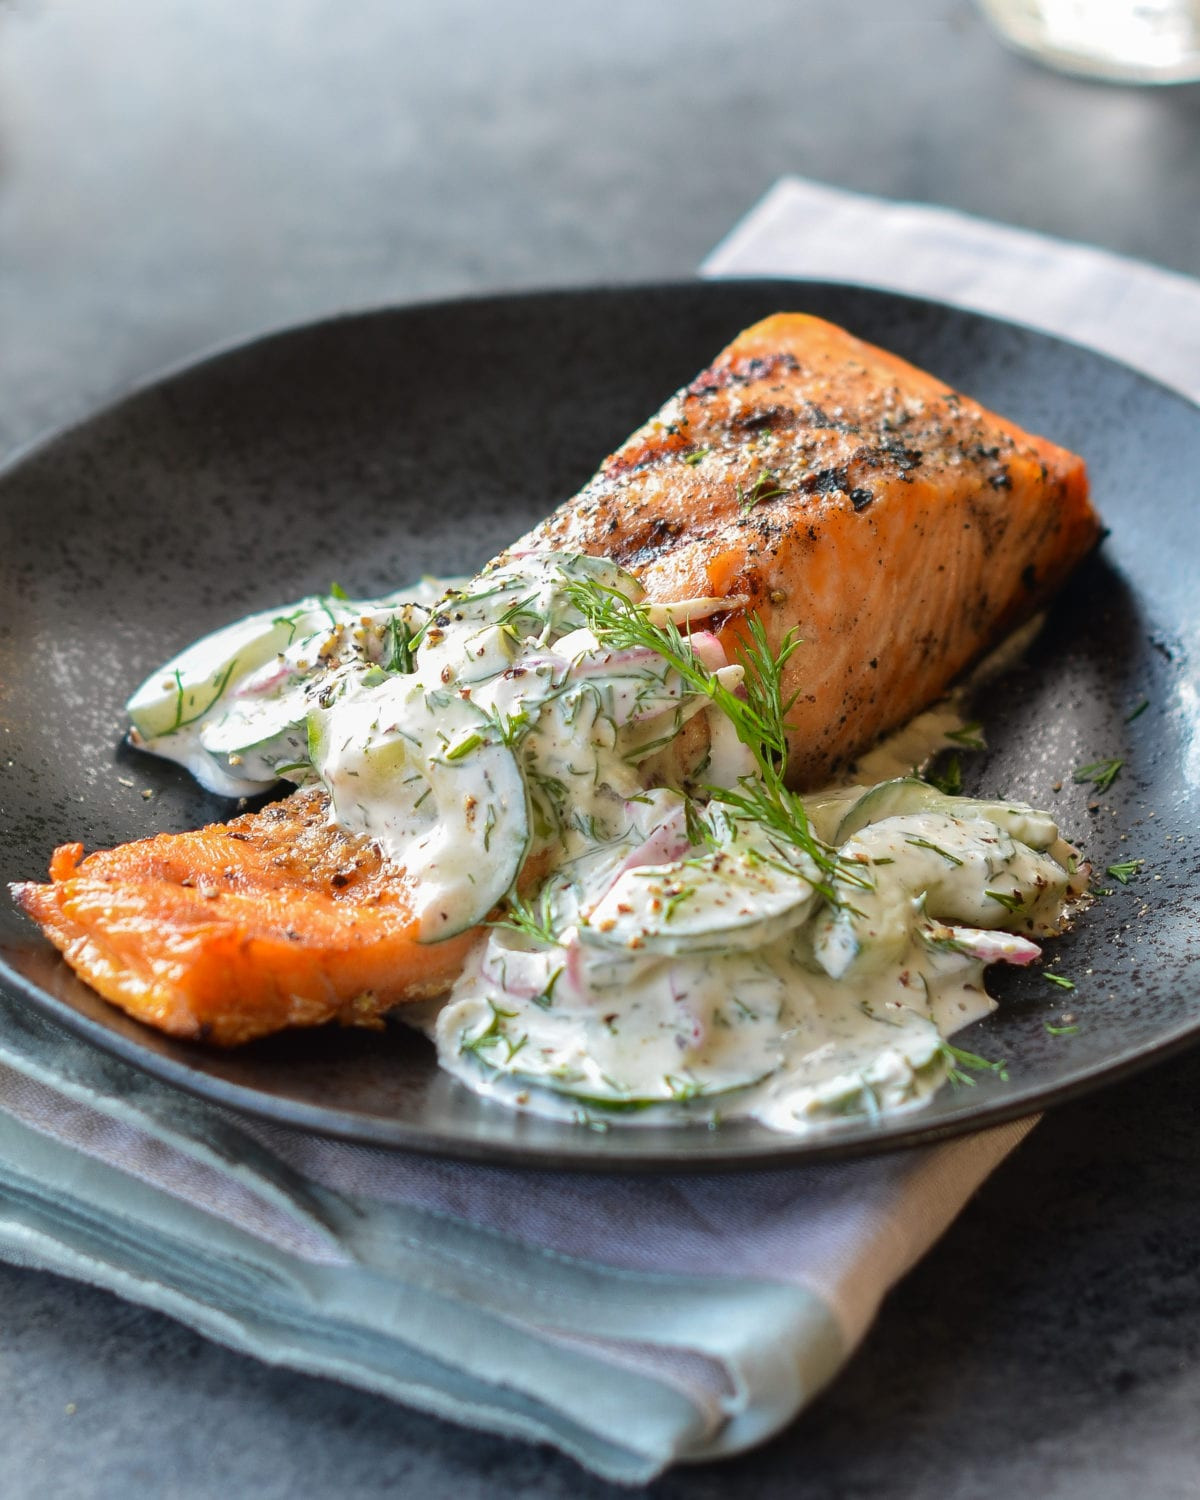 Baked Salmon Salad Recipe  Grilled Salmon with Creamy Cucumber Dill Salad ce Upon